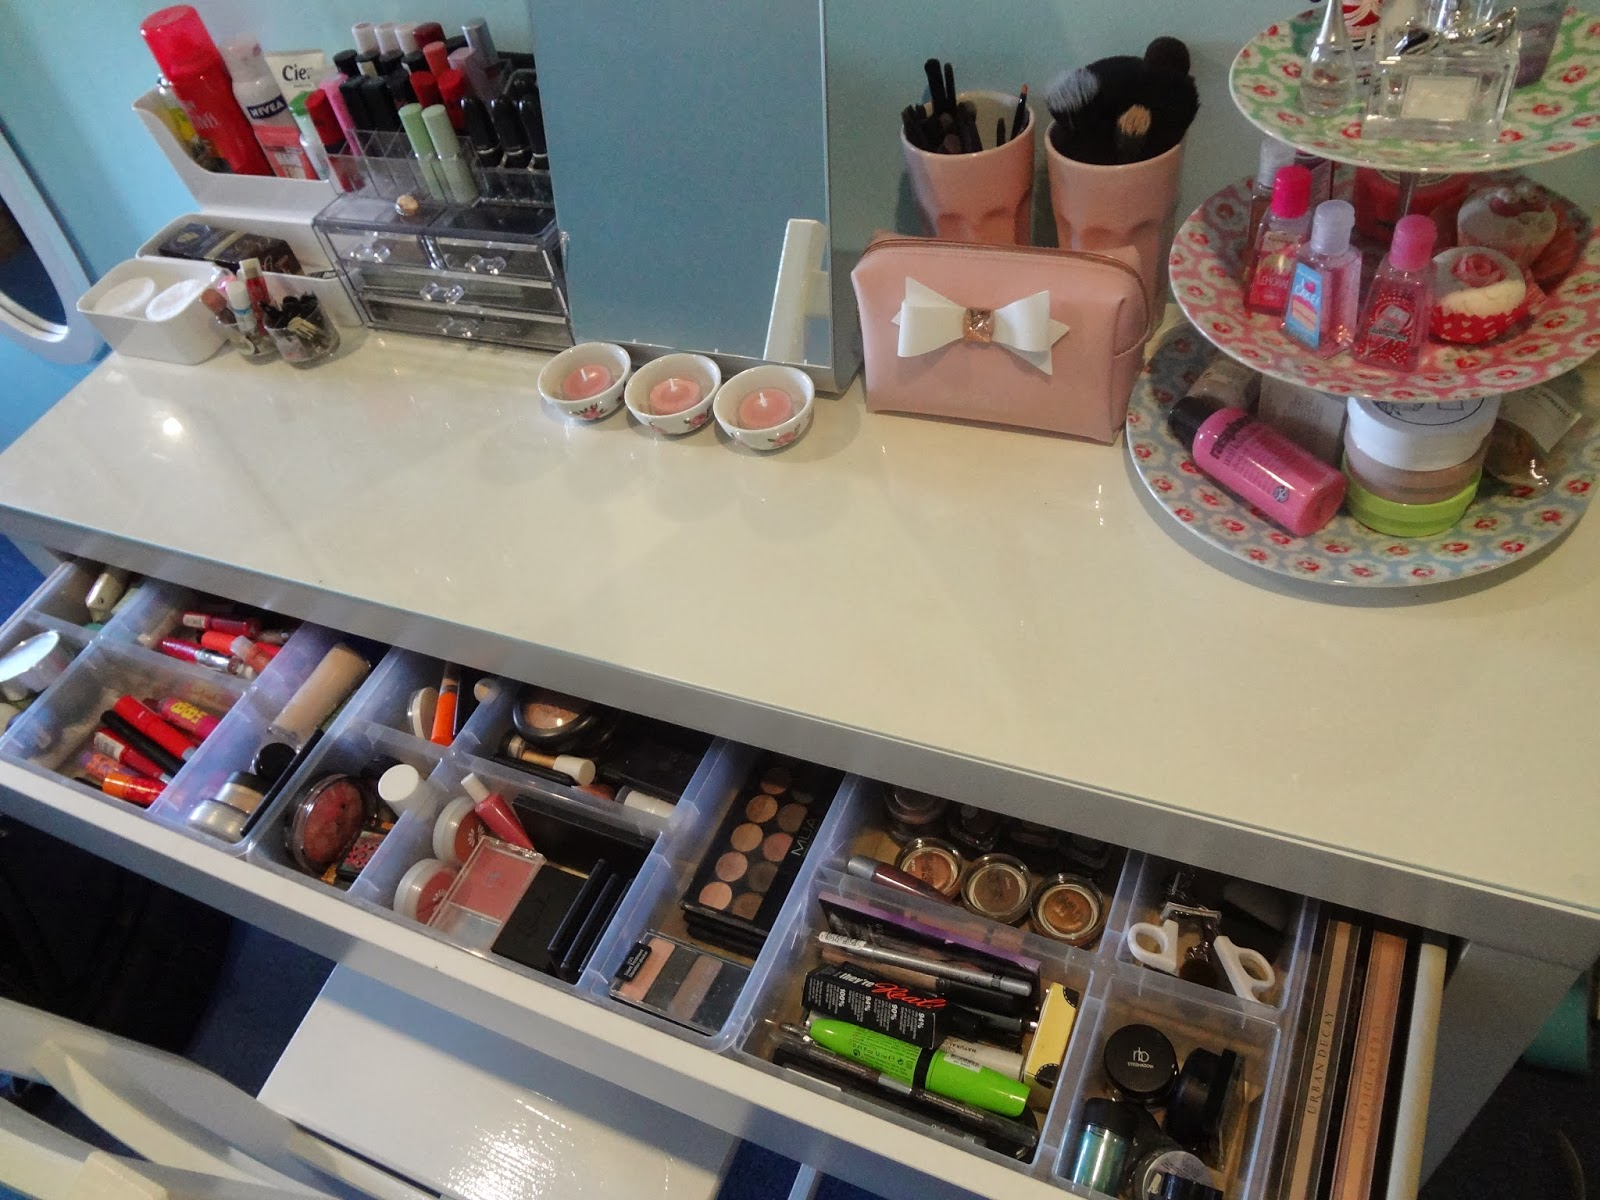 1000 images about makeup work space room on pinterest - Malm dressing table drawer organizer ...